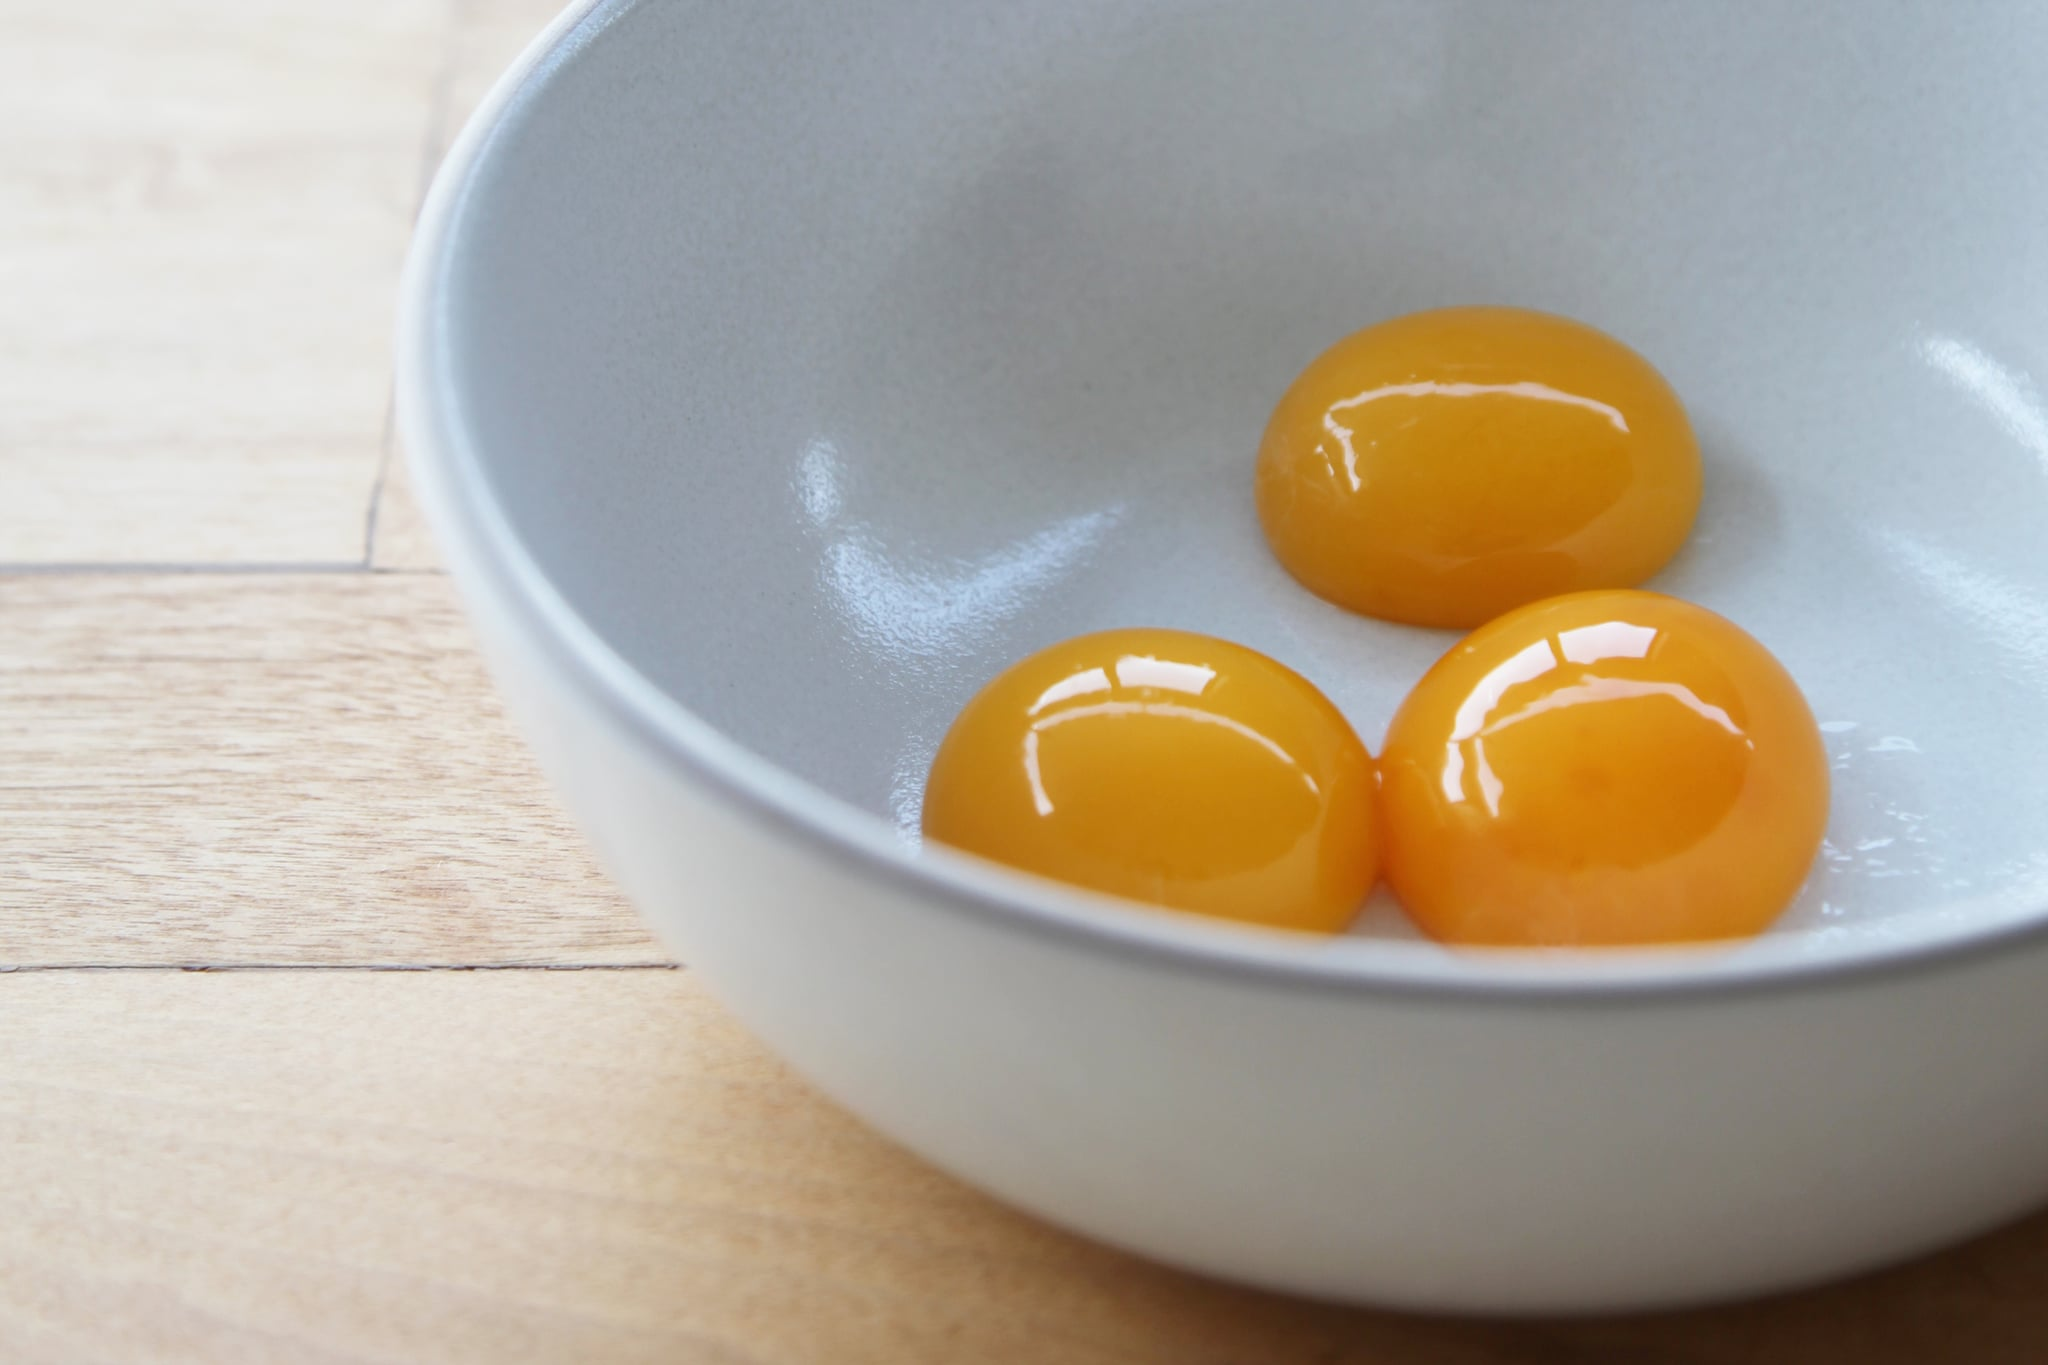 What to do with egg yolks popsugar food - What to do with leftover whites and yolks four simple recipes ...